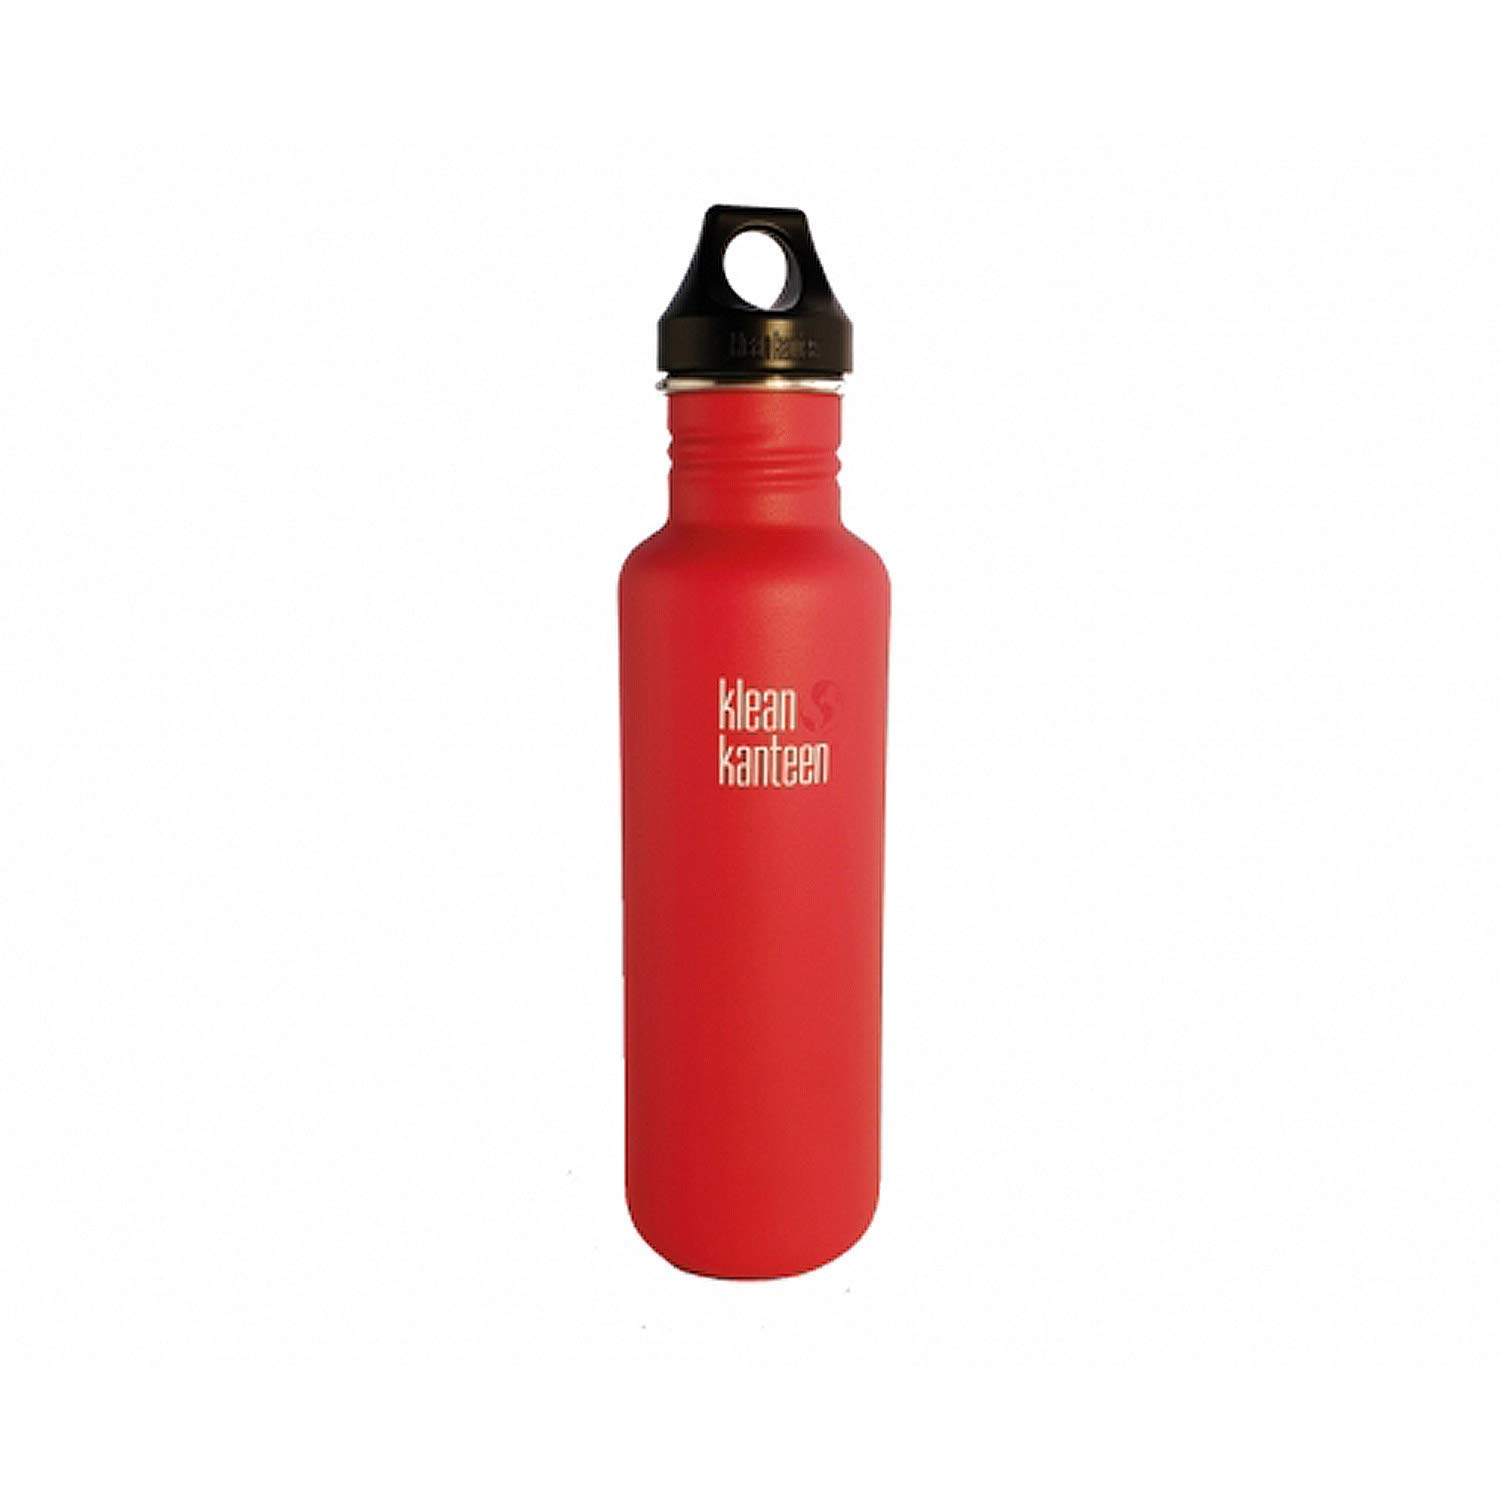 Details about klean kanteen classic 800ml post box red drink bottle with loop cap